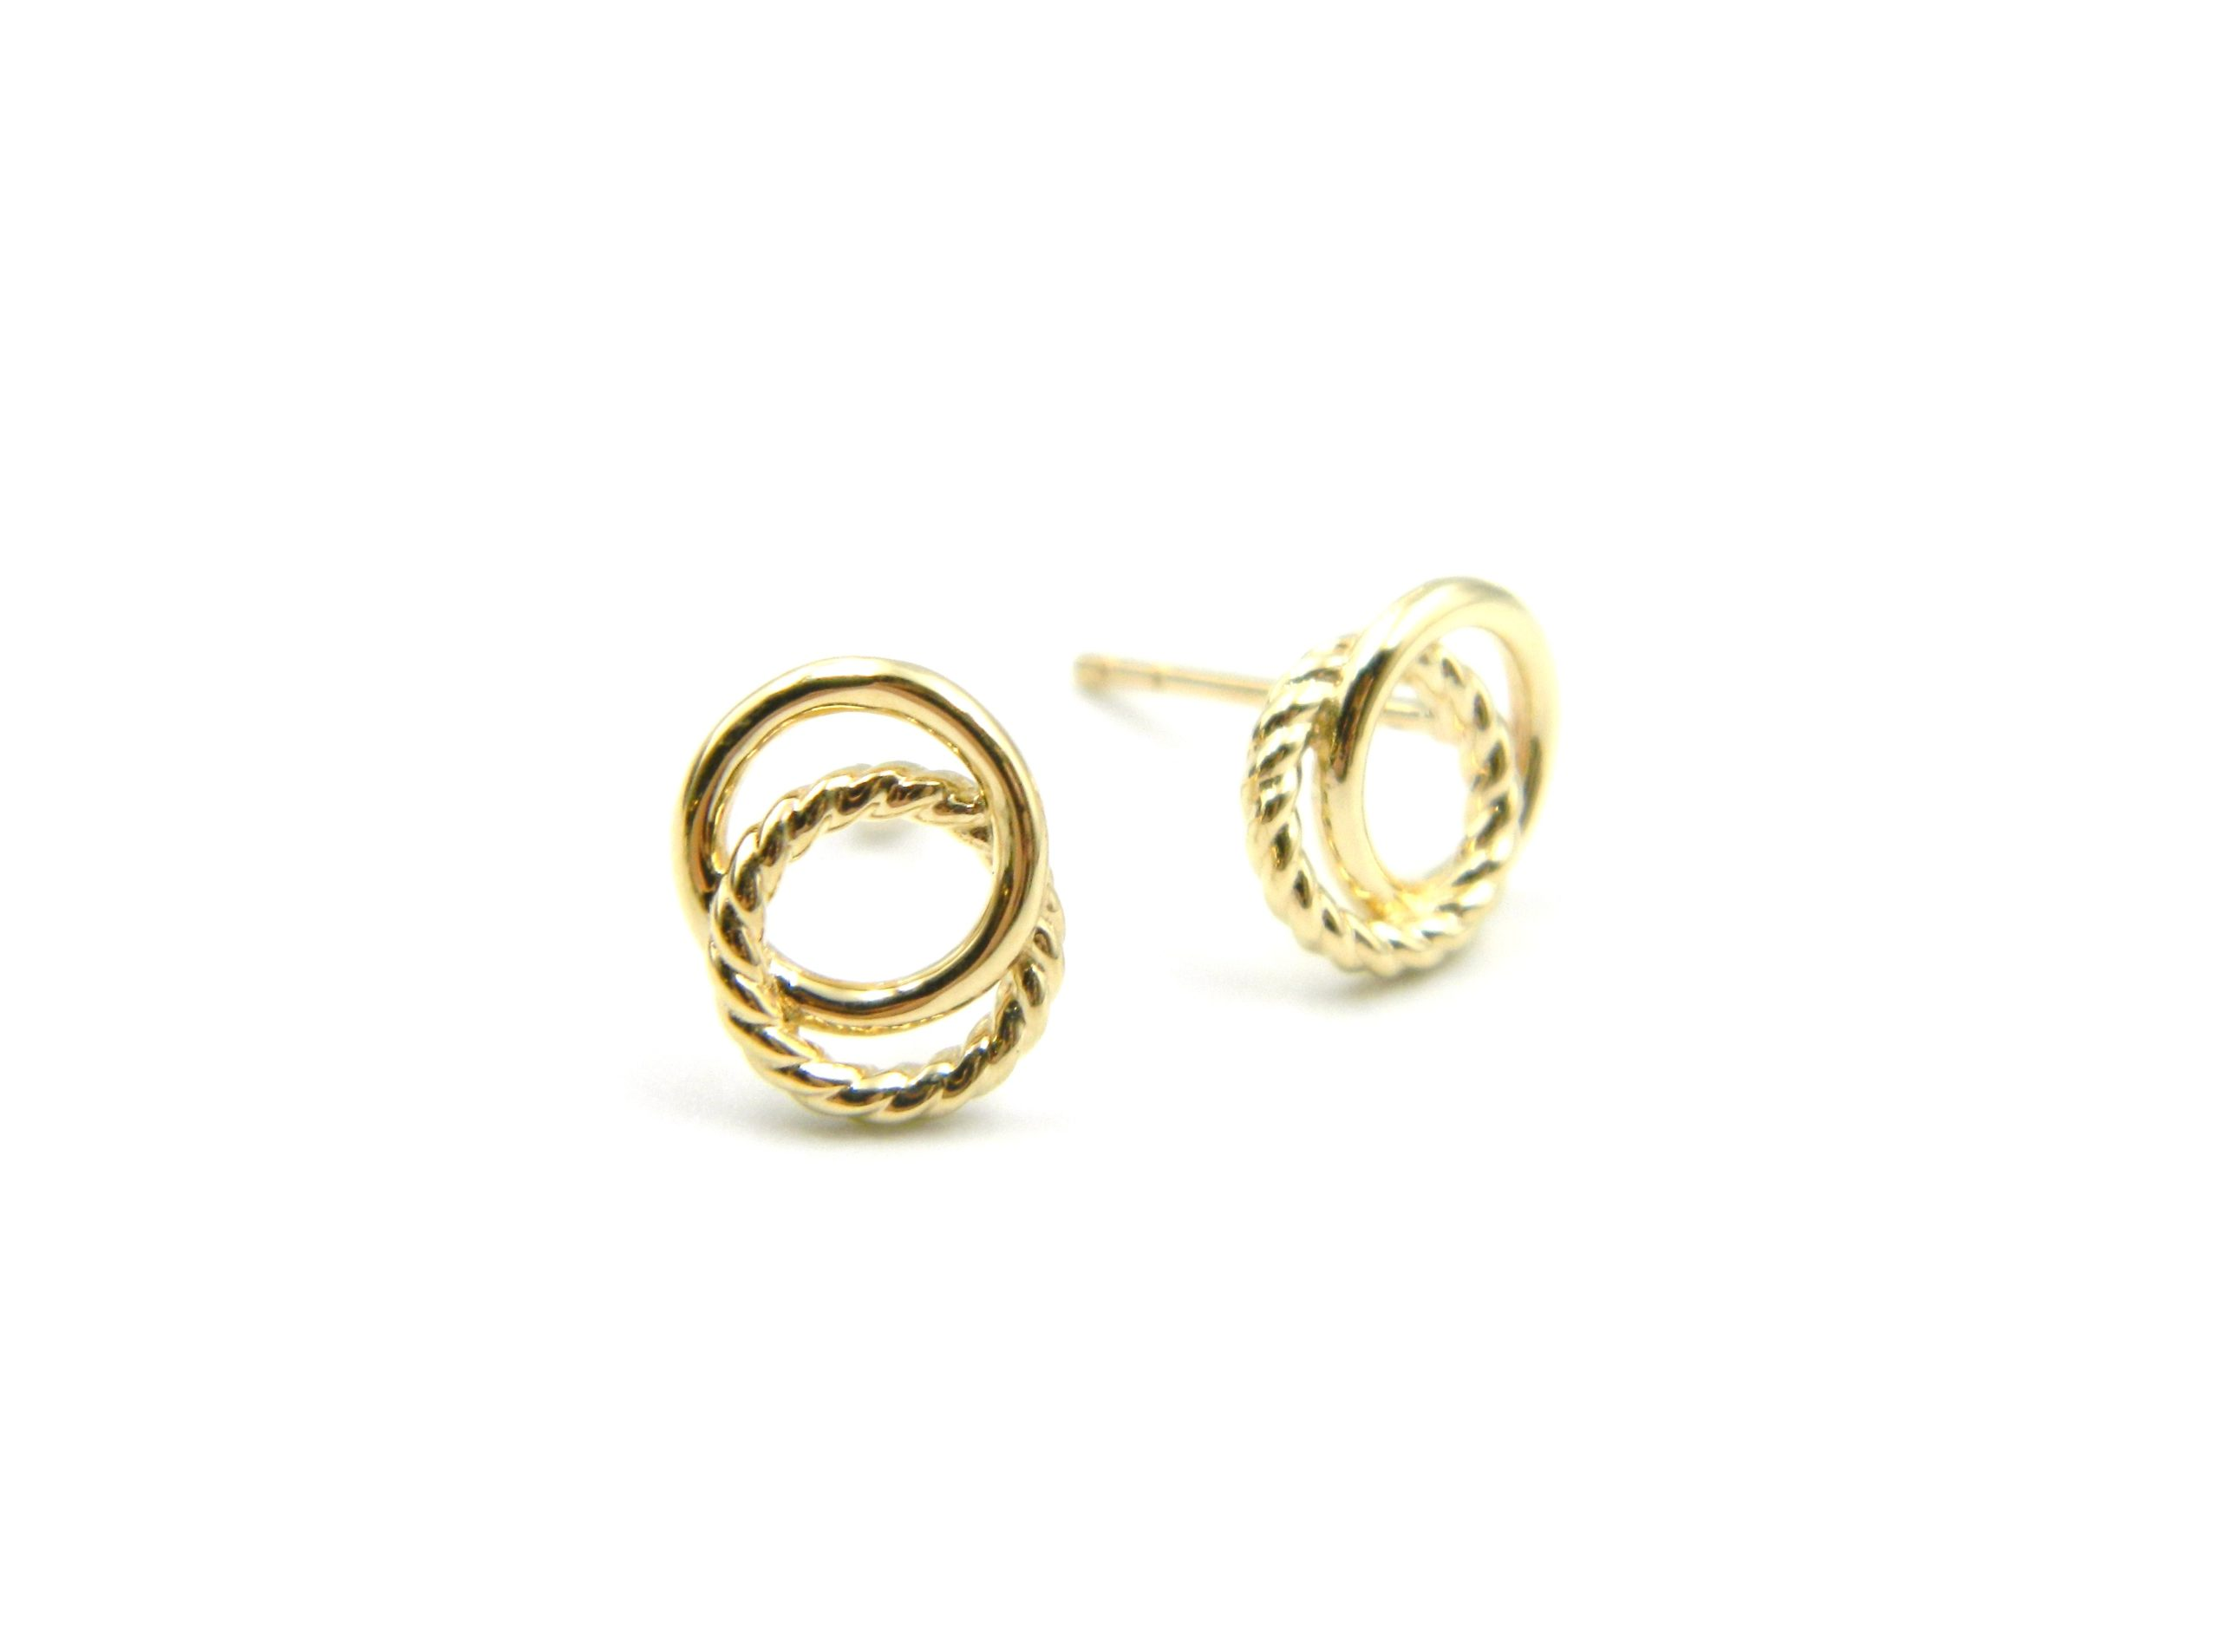 Yellow Gold Twisted Rope & Polished Circle Earrings